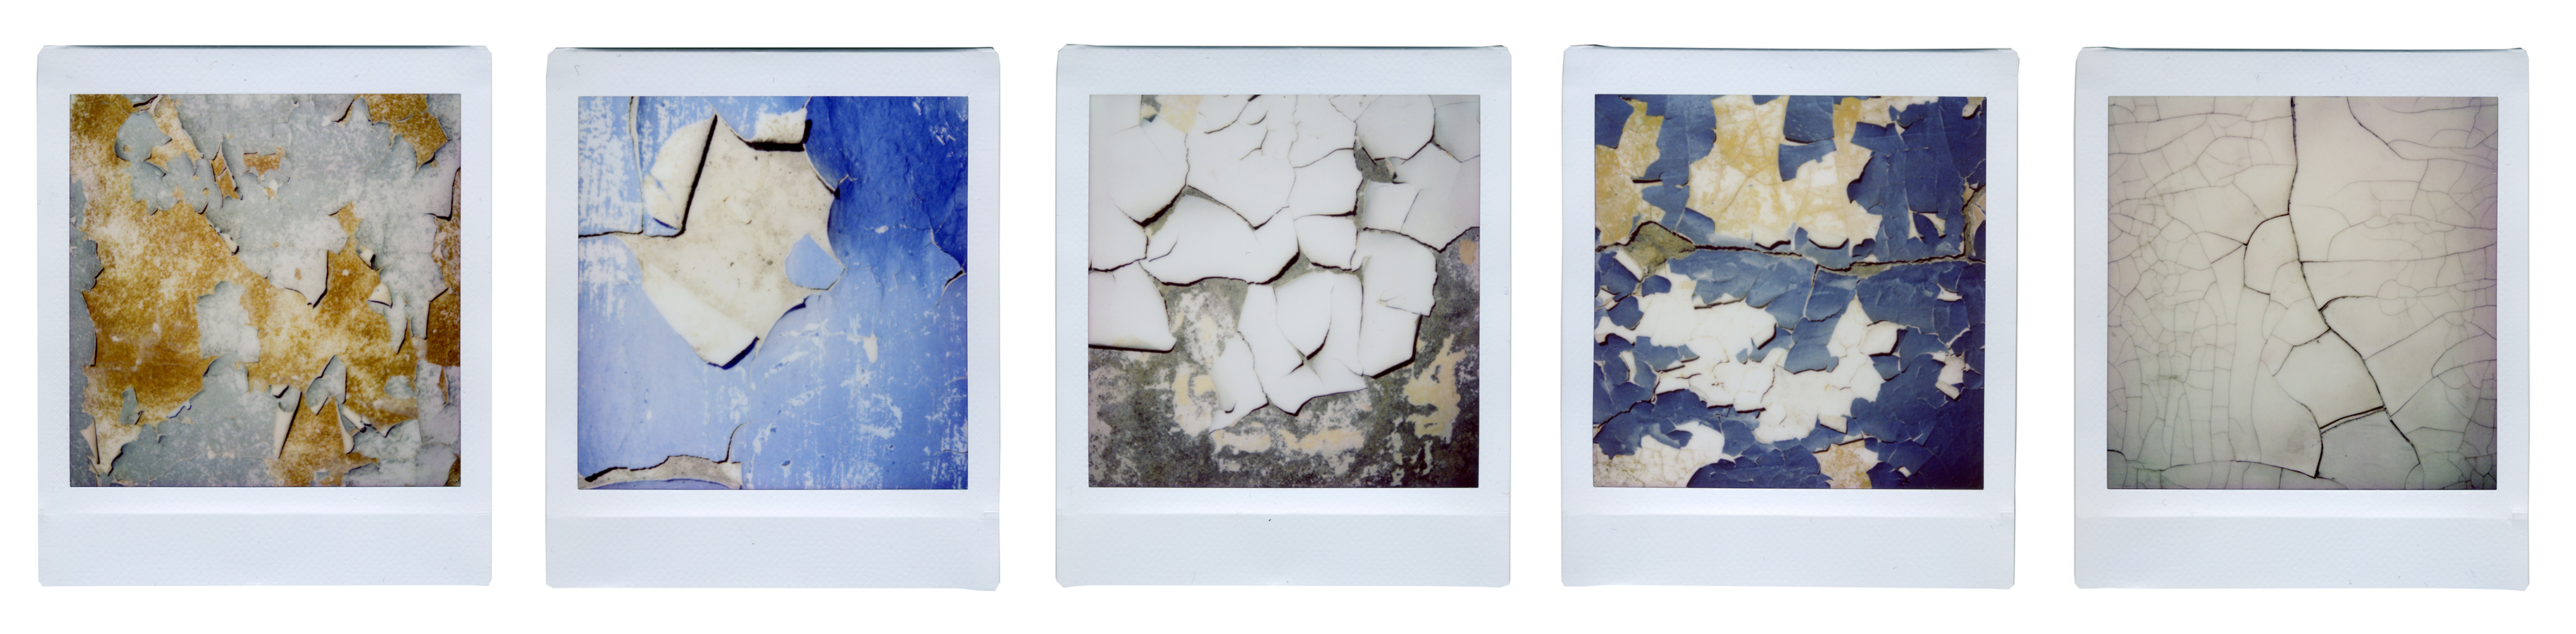 Persistent Variable, 2020. Instant photos for this projects were made in Alykel, abandoned pilots' village near Norilsk. Cracked painting and peeling wallpaper look like Arctic plants, capturing the fleeting life and human fragility